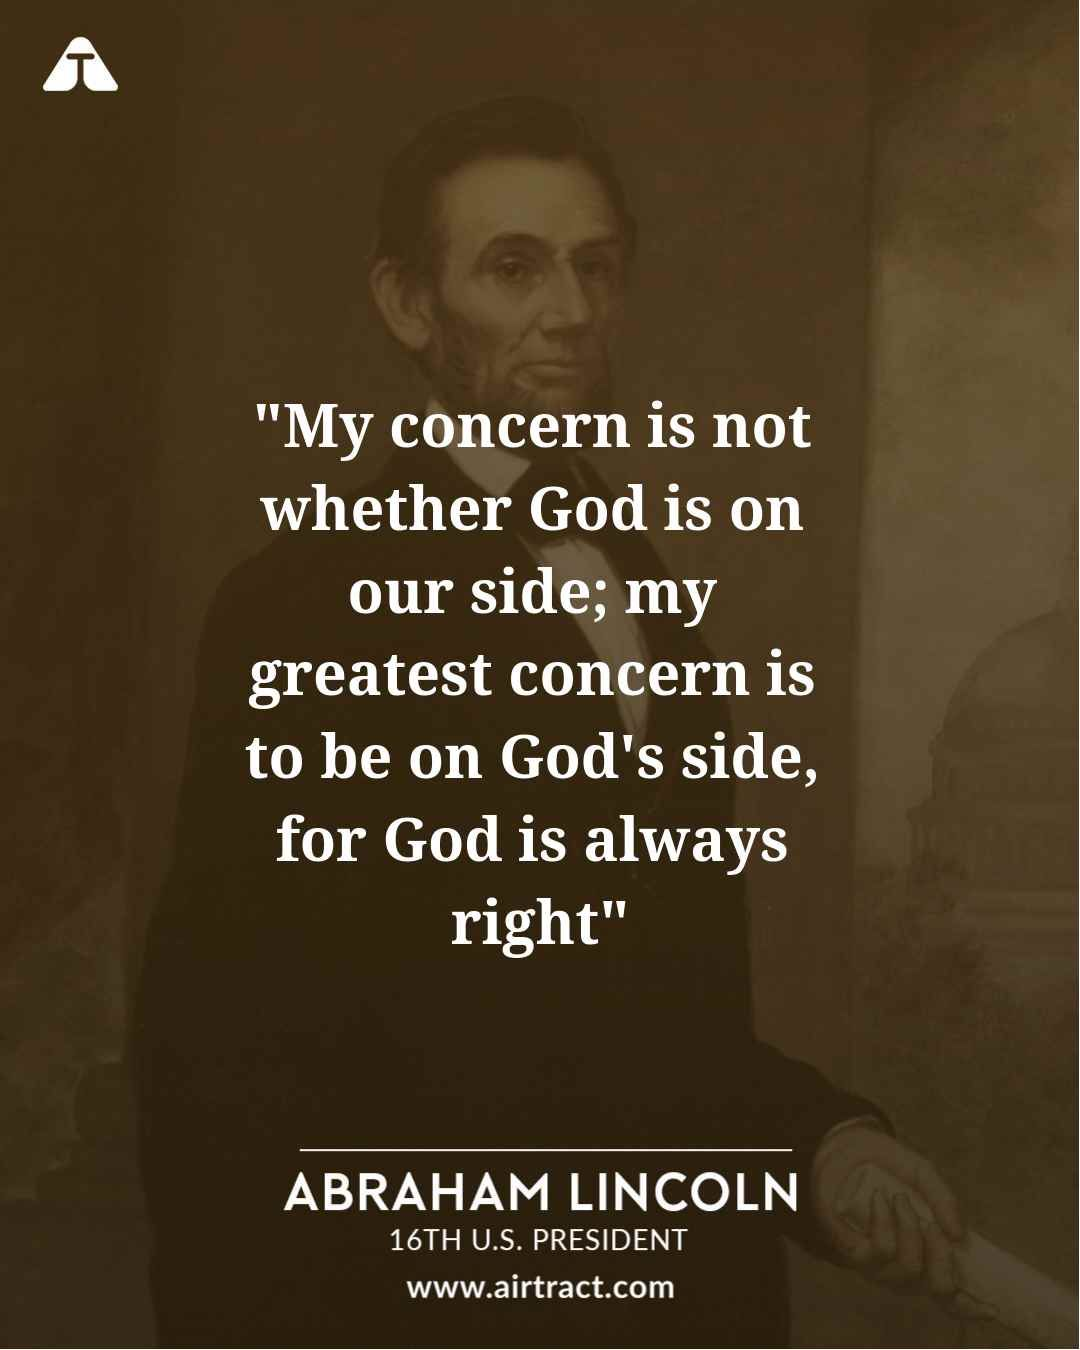 My concern is not whether God is on our side; my greatest